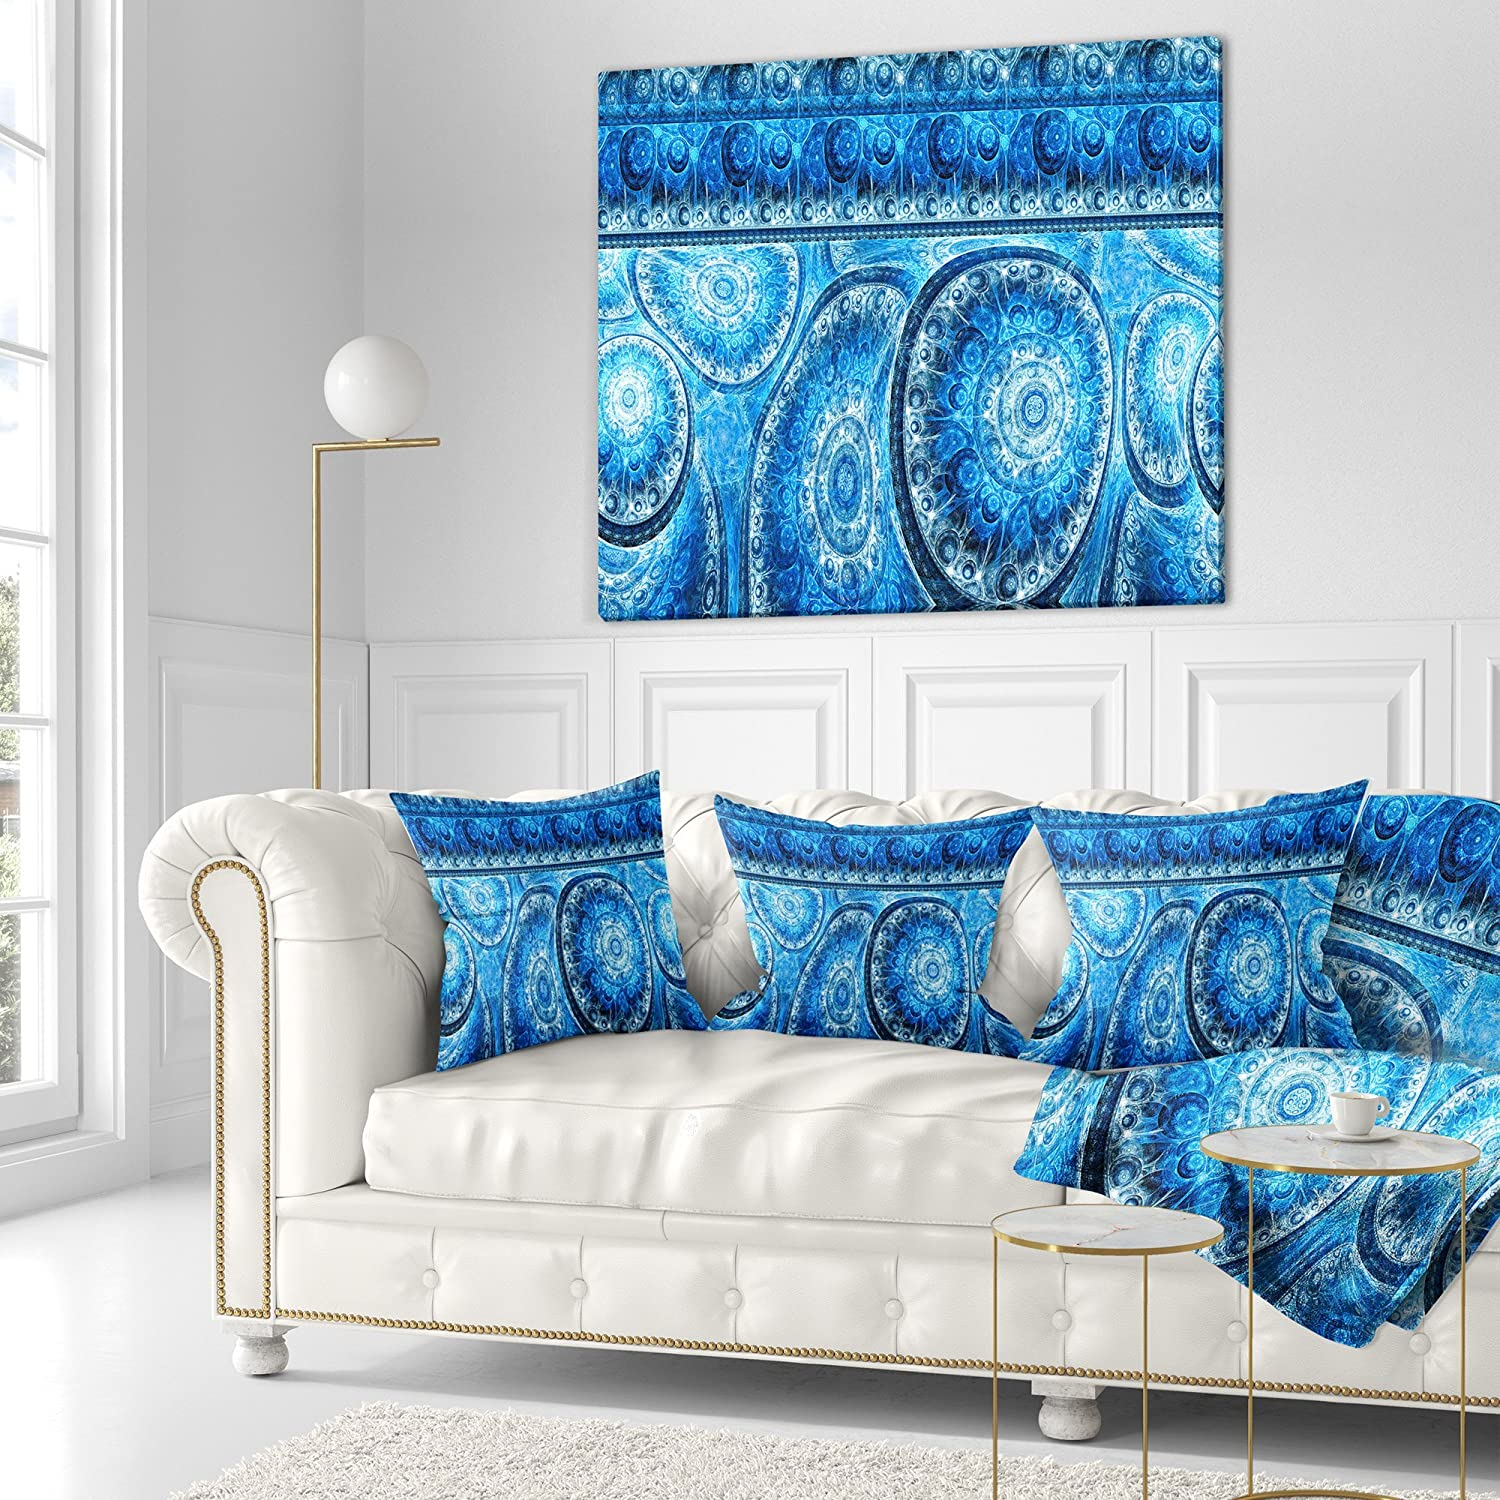 Sofa Throw Pillow 18 in x 18 in in Designart CU16148-18-18 Blue Cells Fractal Design Abstract Cushion Cover for Living Room